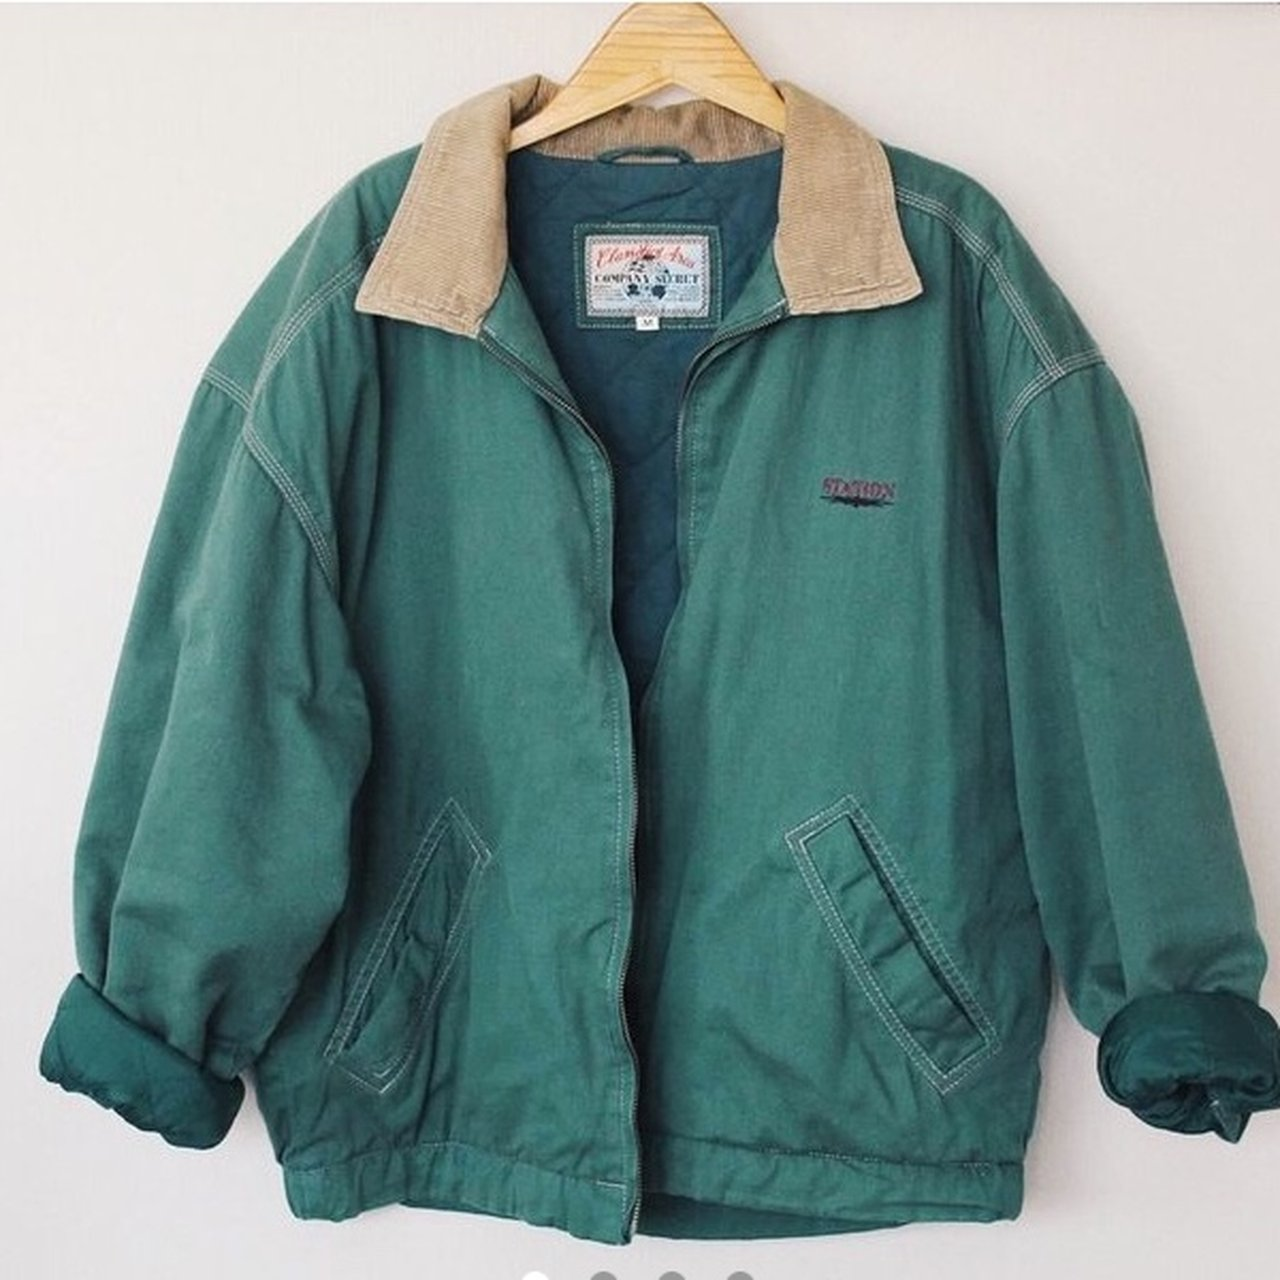 559e7d972c Vintage unisex bomber jacket   coat in green colour and a in - Depop